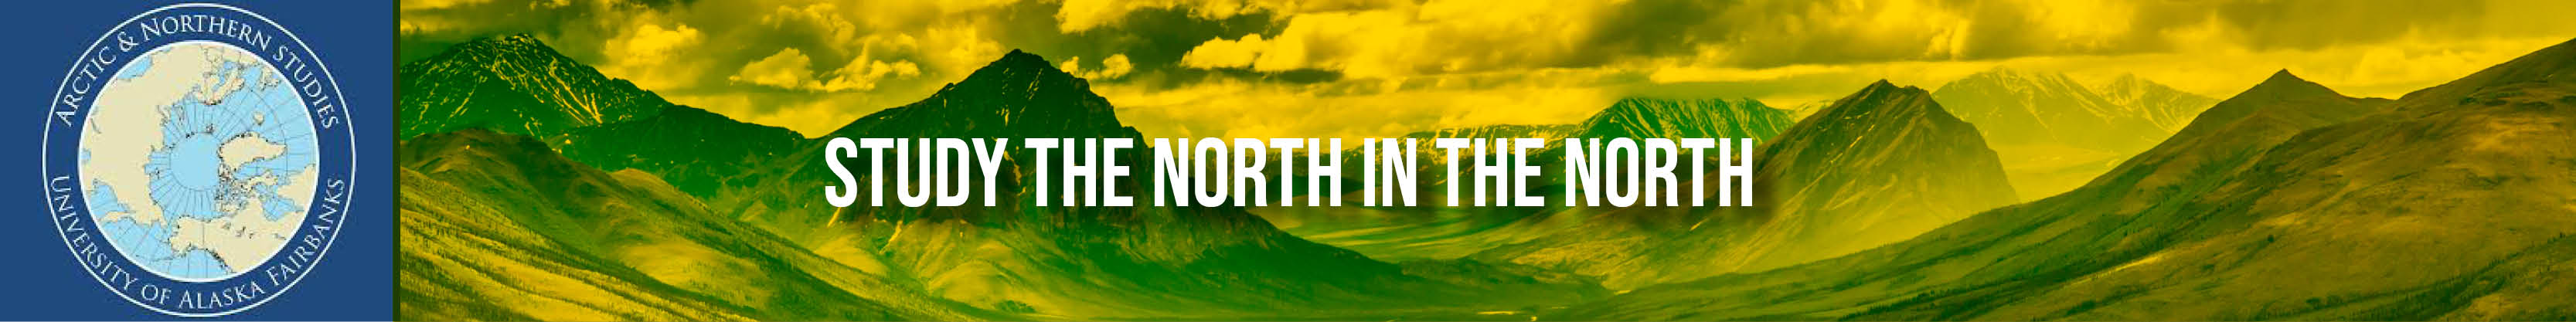 Study the North in the North